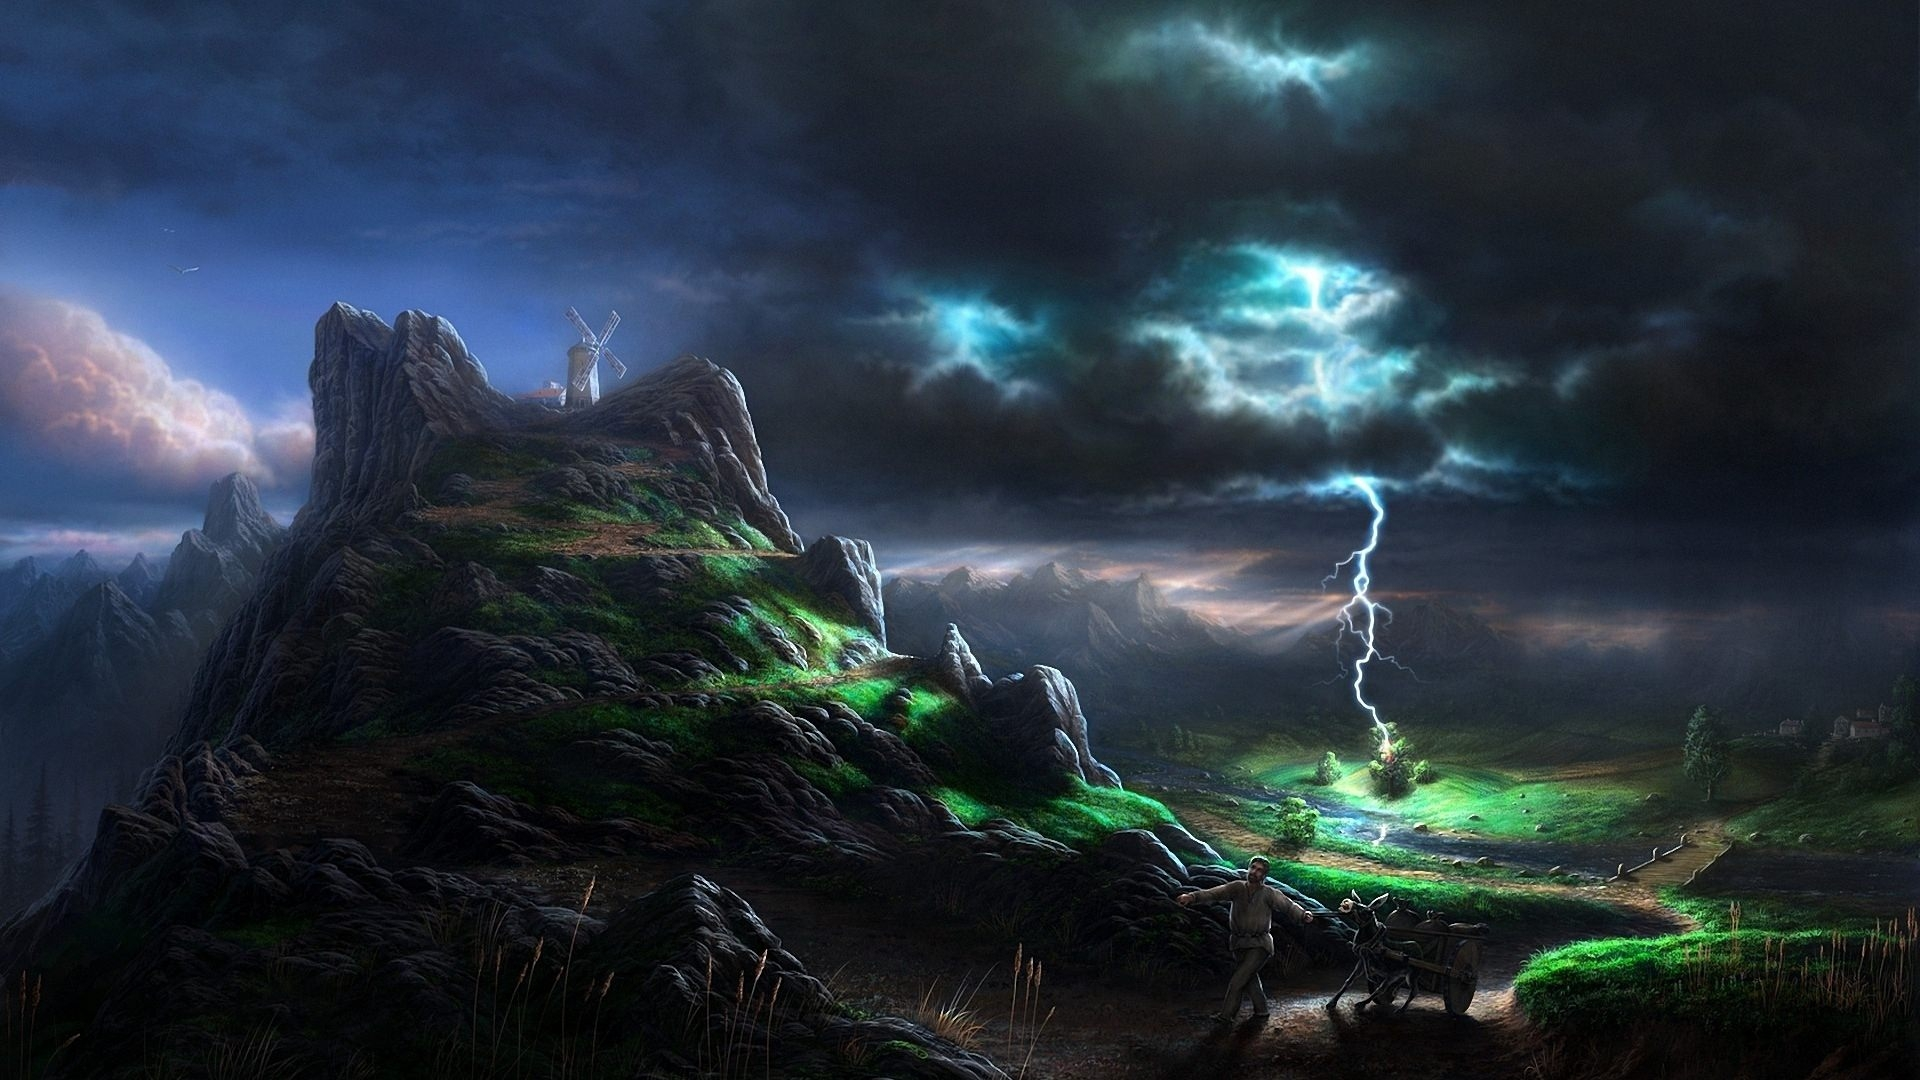 Lightning in Mountains Wallpaper